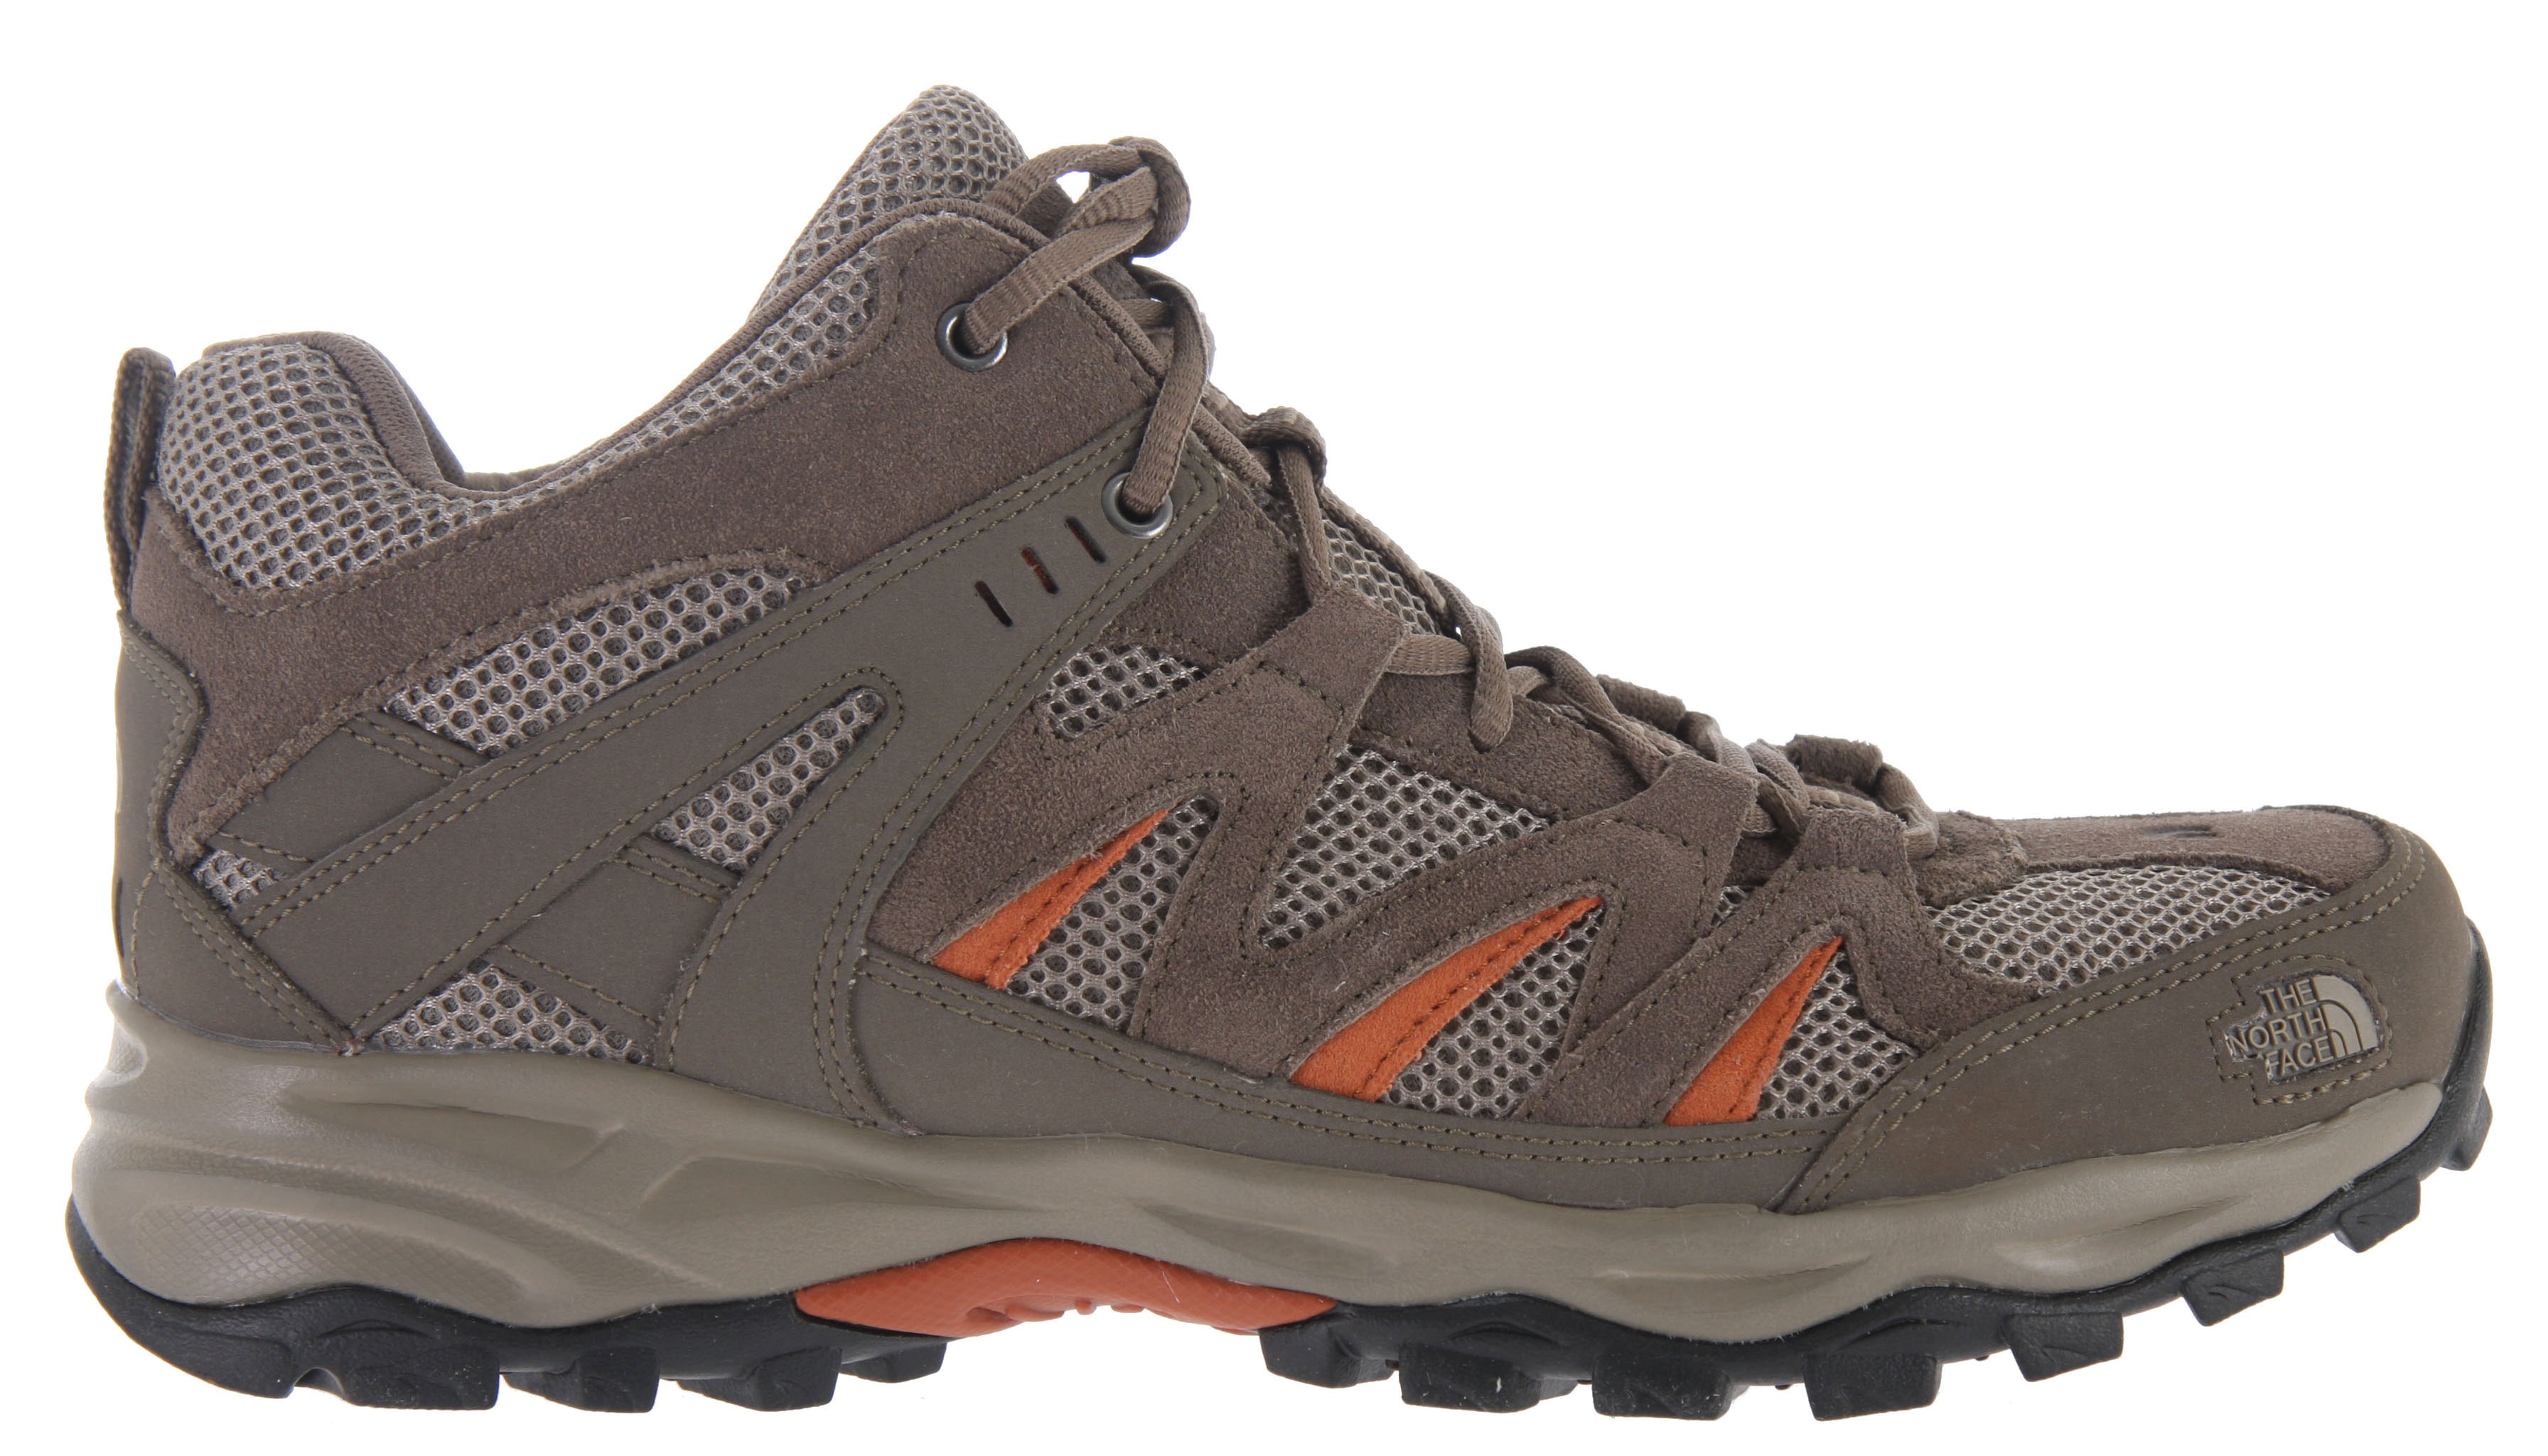 Camp and Hike Designed for light backpacking or hiking, the North Face Tyndall Mid Hiking Shoe is lightweight, streamlined, mid-cut hiker is built with high-traction UltrATAC outsole and a breathable mesh/leather upper.Key Features of The North Face Tyndall Mid Hiking Shoes: Injection-molded EVA midsole Midfoot steel shank High-abrasion UltrATAC rubber outsole Upper: Combination polyurethane (PU)-coated and suede leather upper with breathable air mesh Dual-density Northotic footbed Approx Weight pair: 1 lb 13 oz (820 g) - $54.95